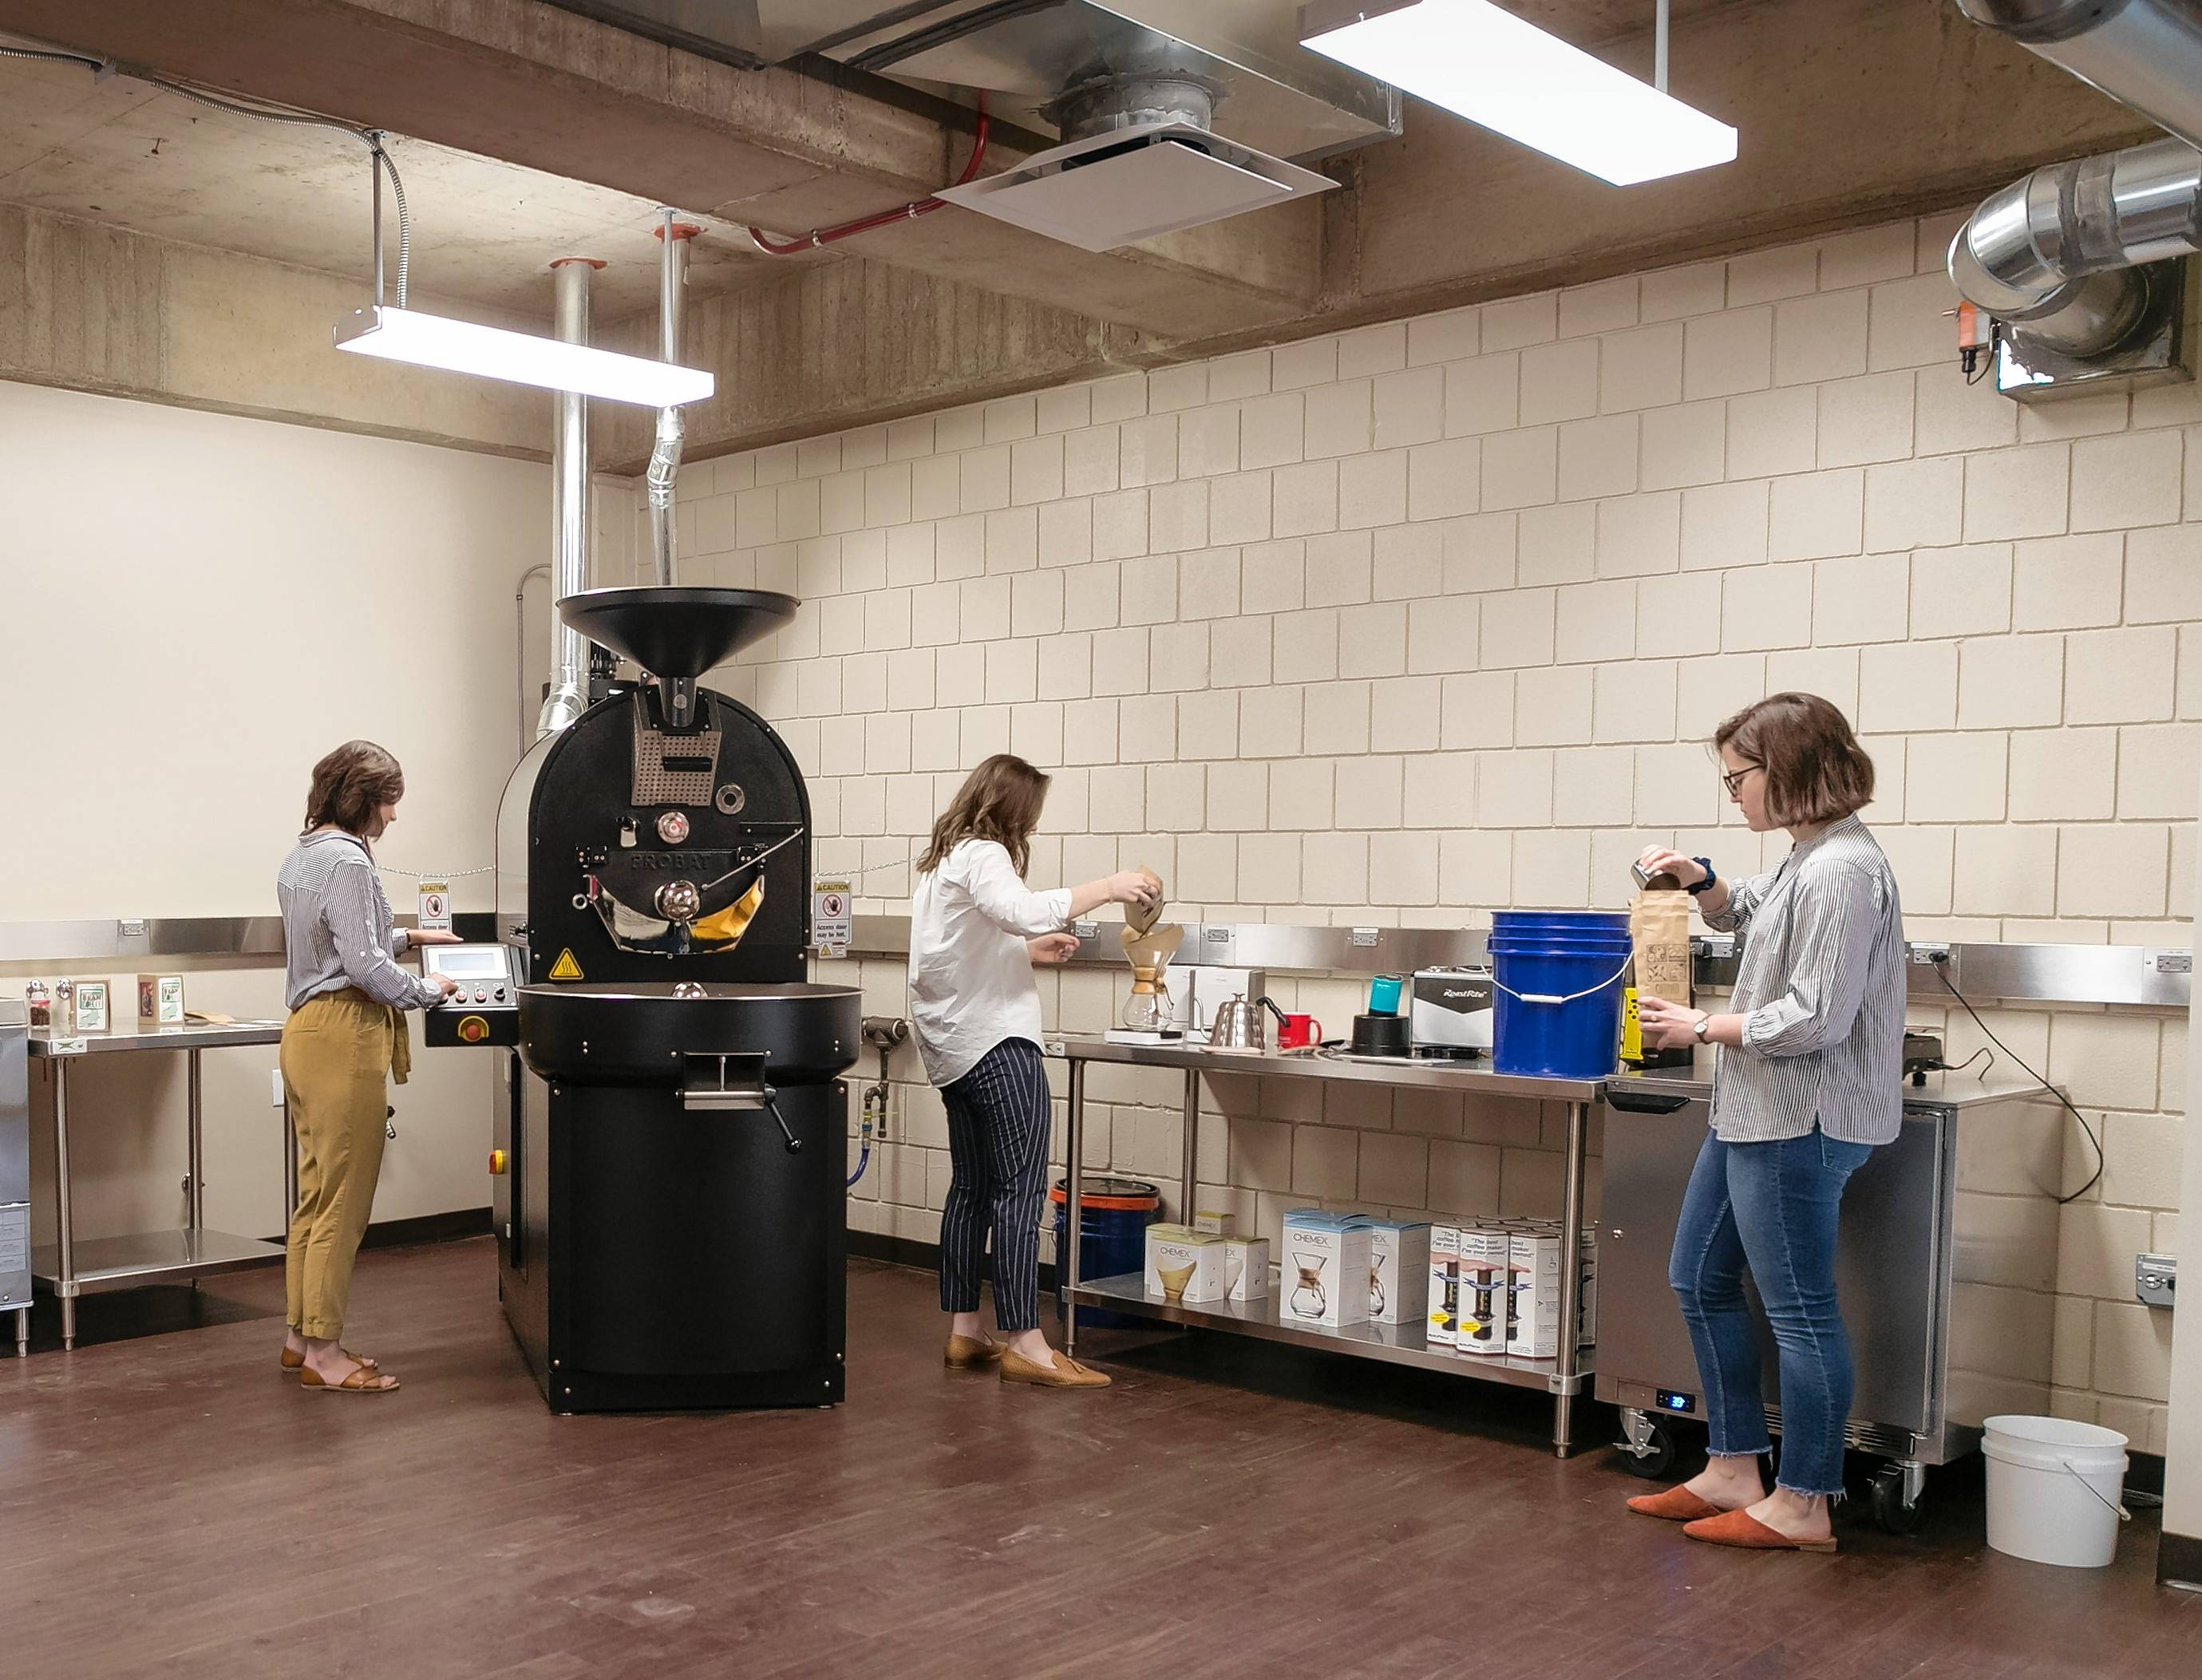 Students involved with North Central College's chapter of Enactus, an organization promoting social justice through entrepreneurship, work in the new on-campus Coffee Lab aimed at studying the industry.